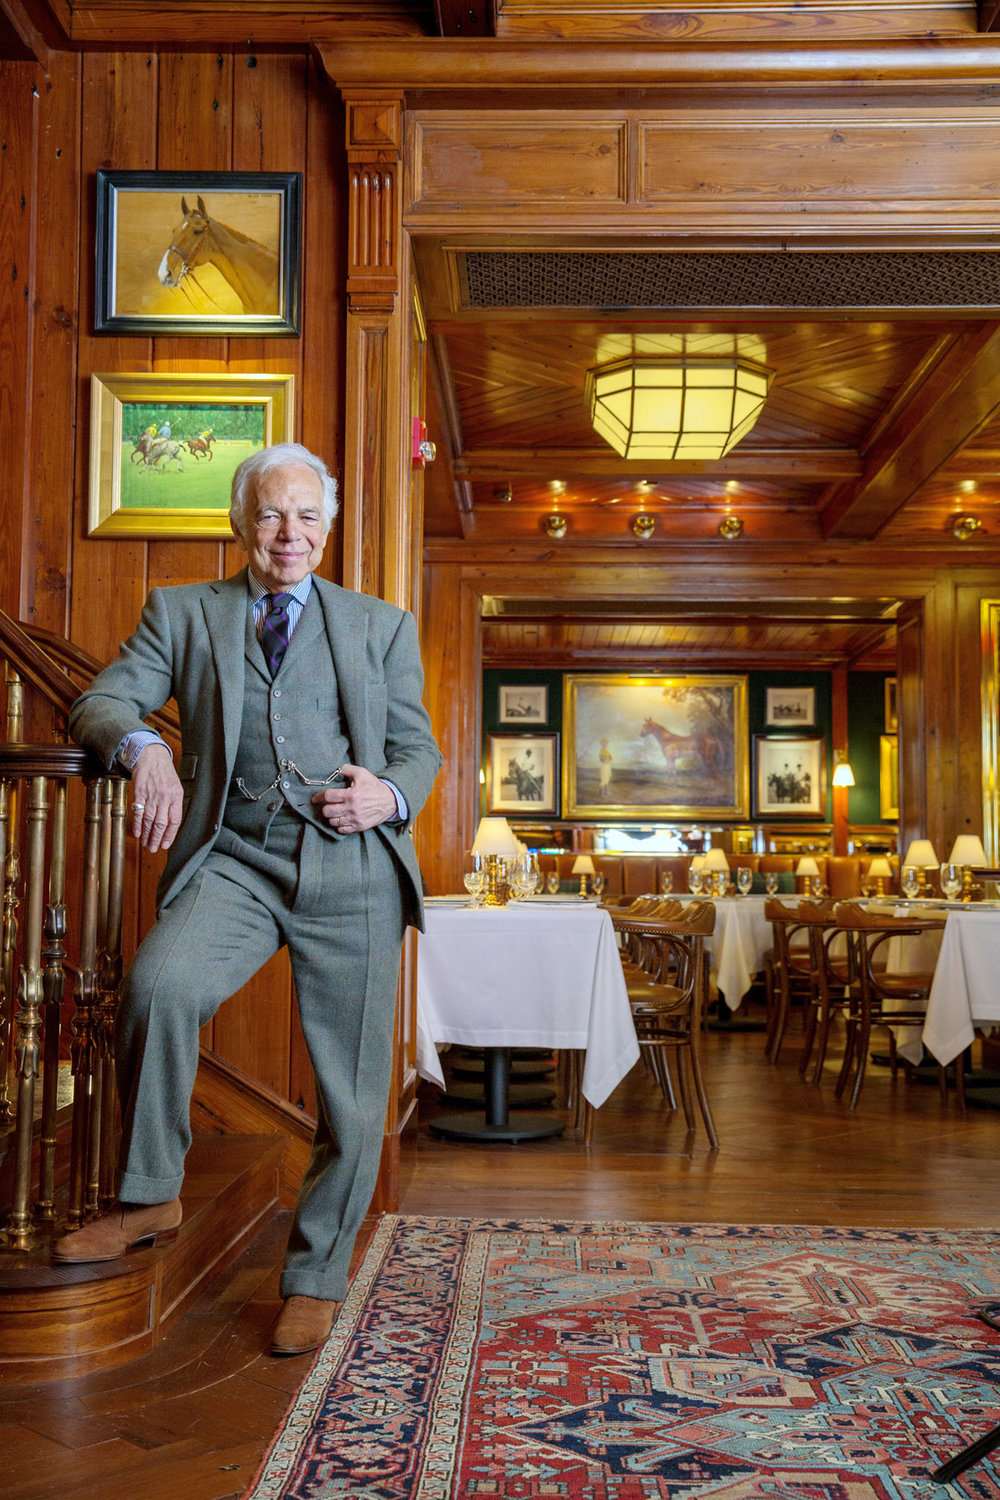 Ralph lauren to open new polo bar restaurant in nyc for Bar dining t bar